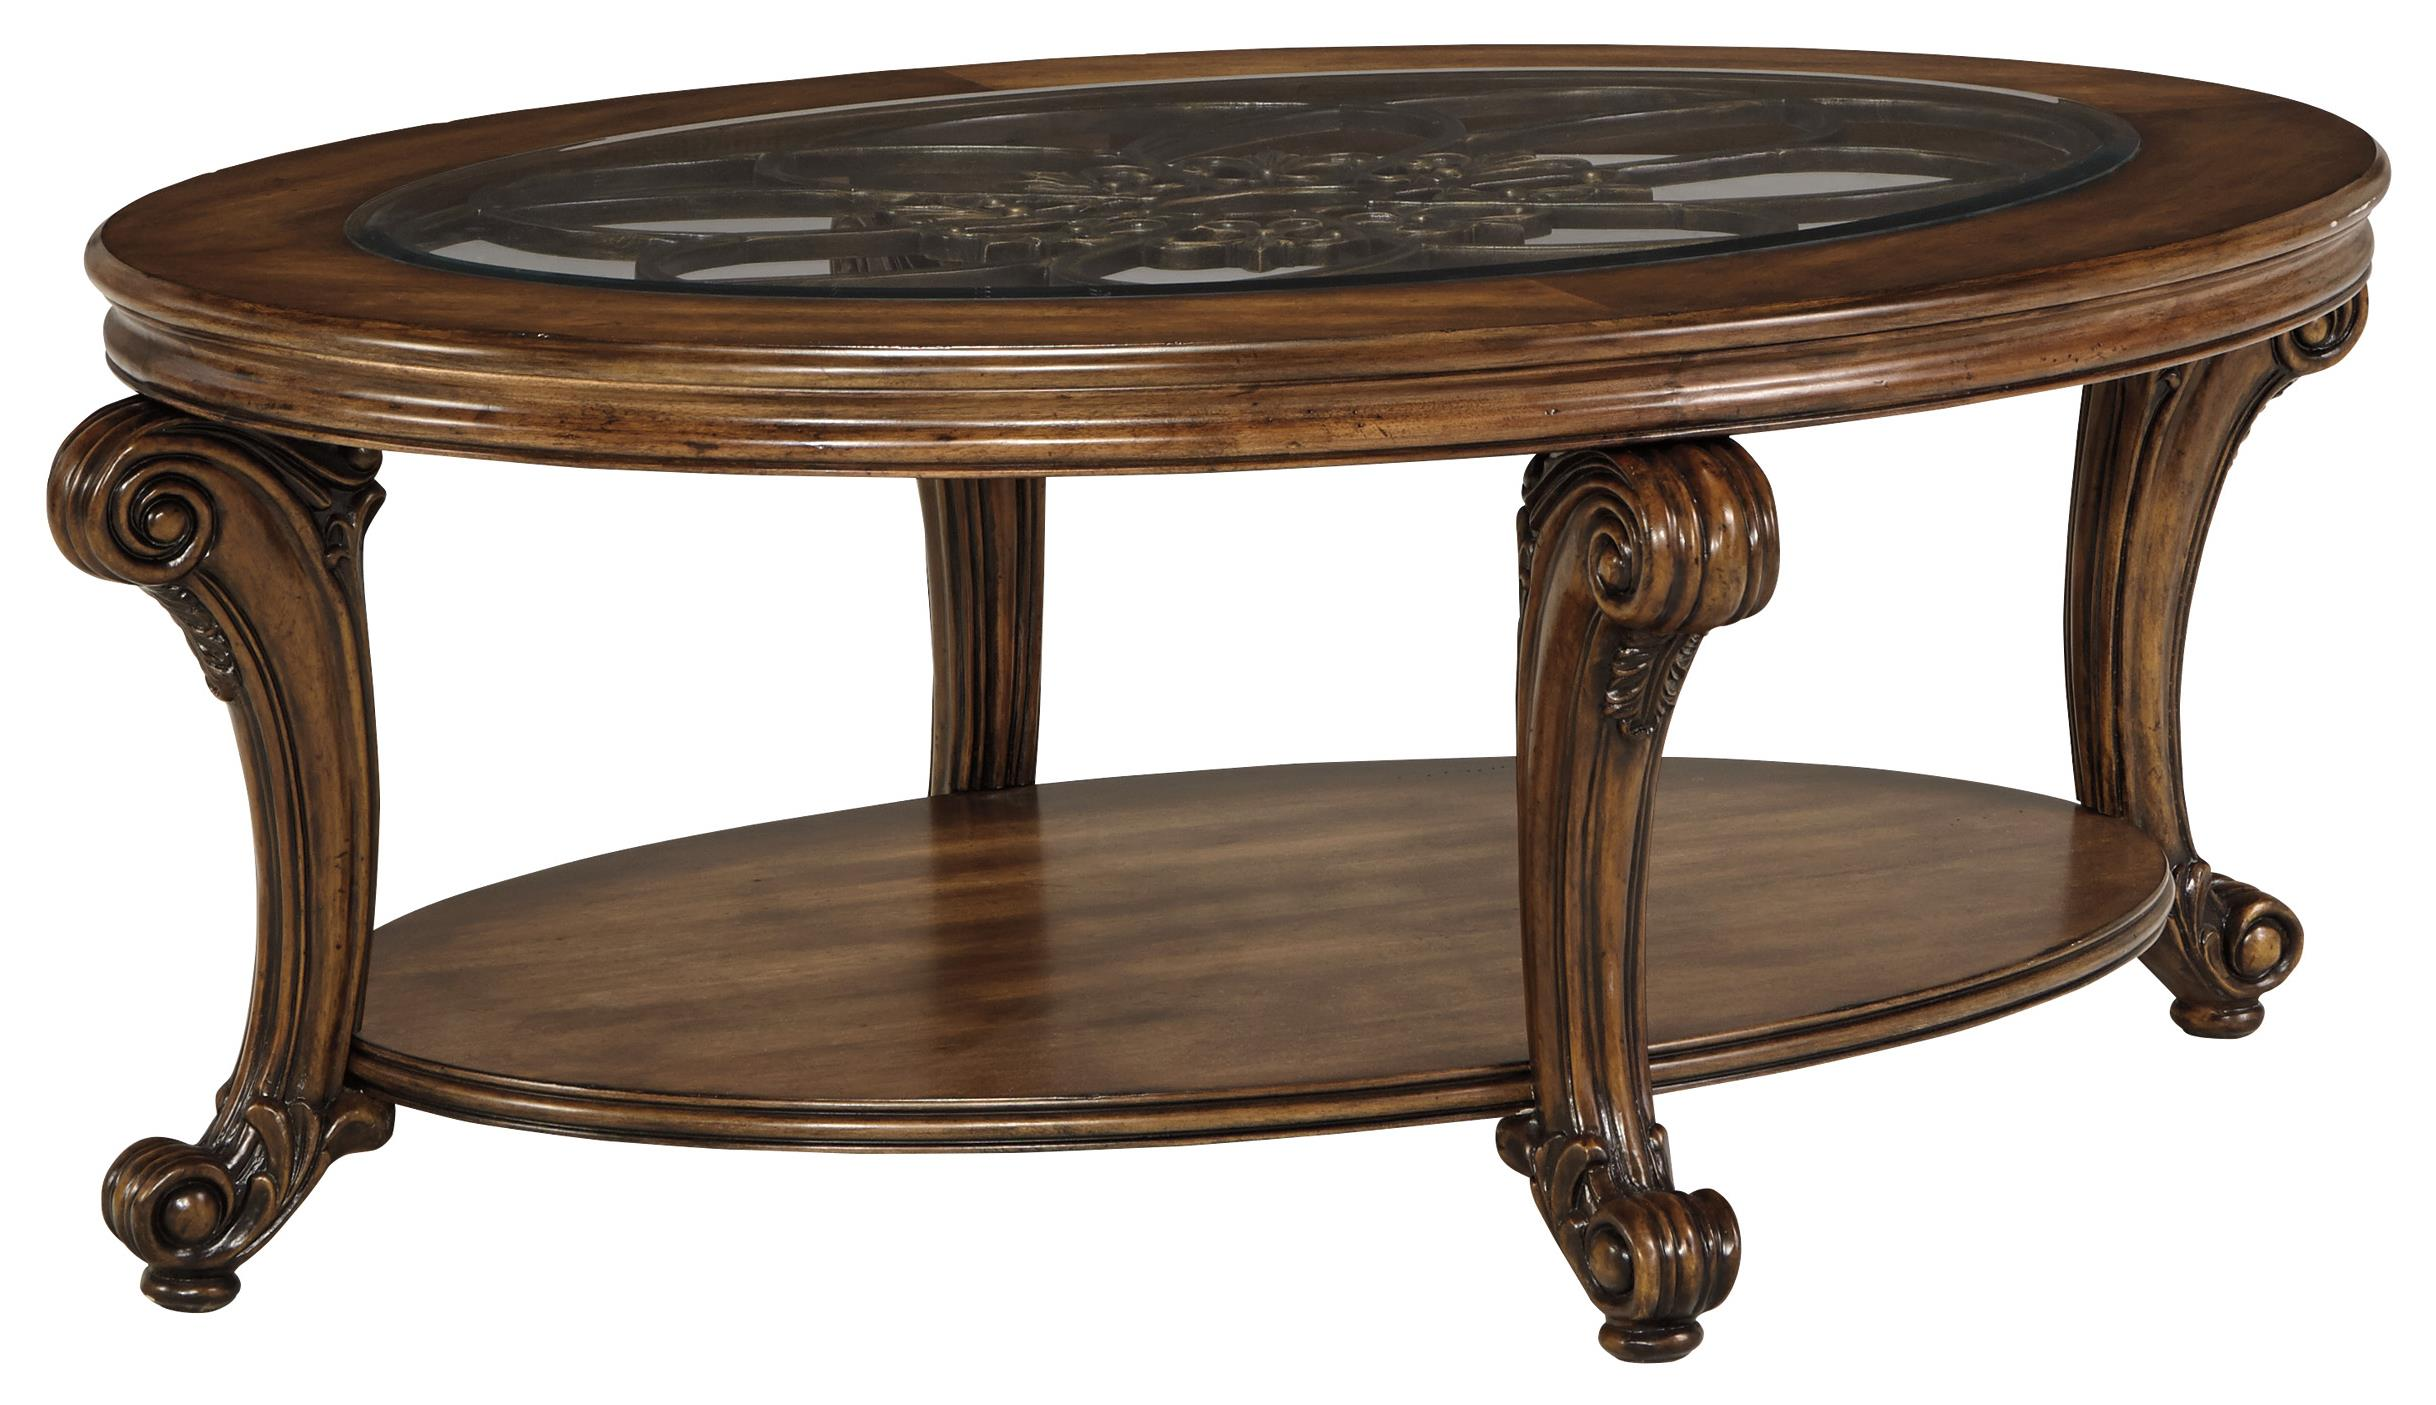 Signature Design by Ashley Sydmore Oval Cocktail Table - Item Number: T799-0